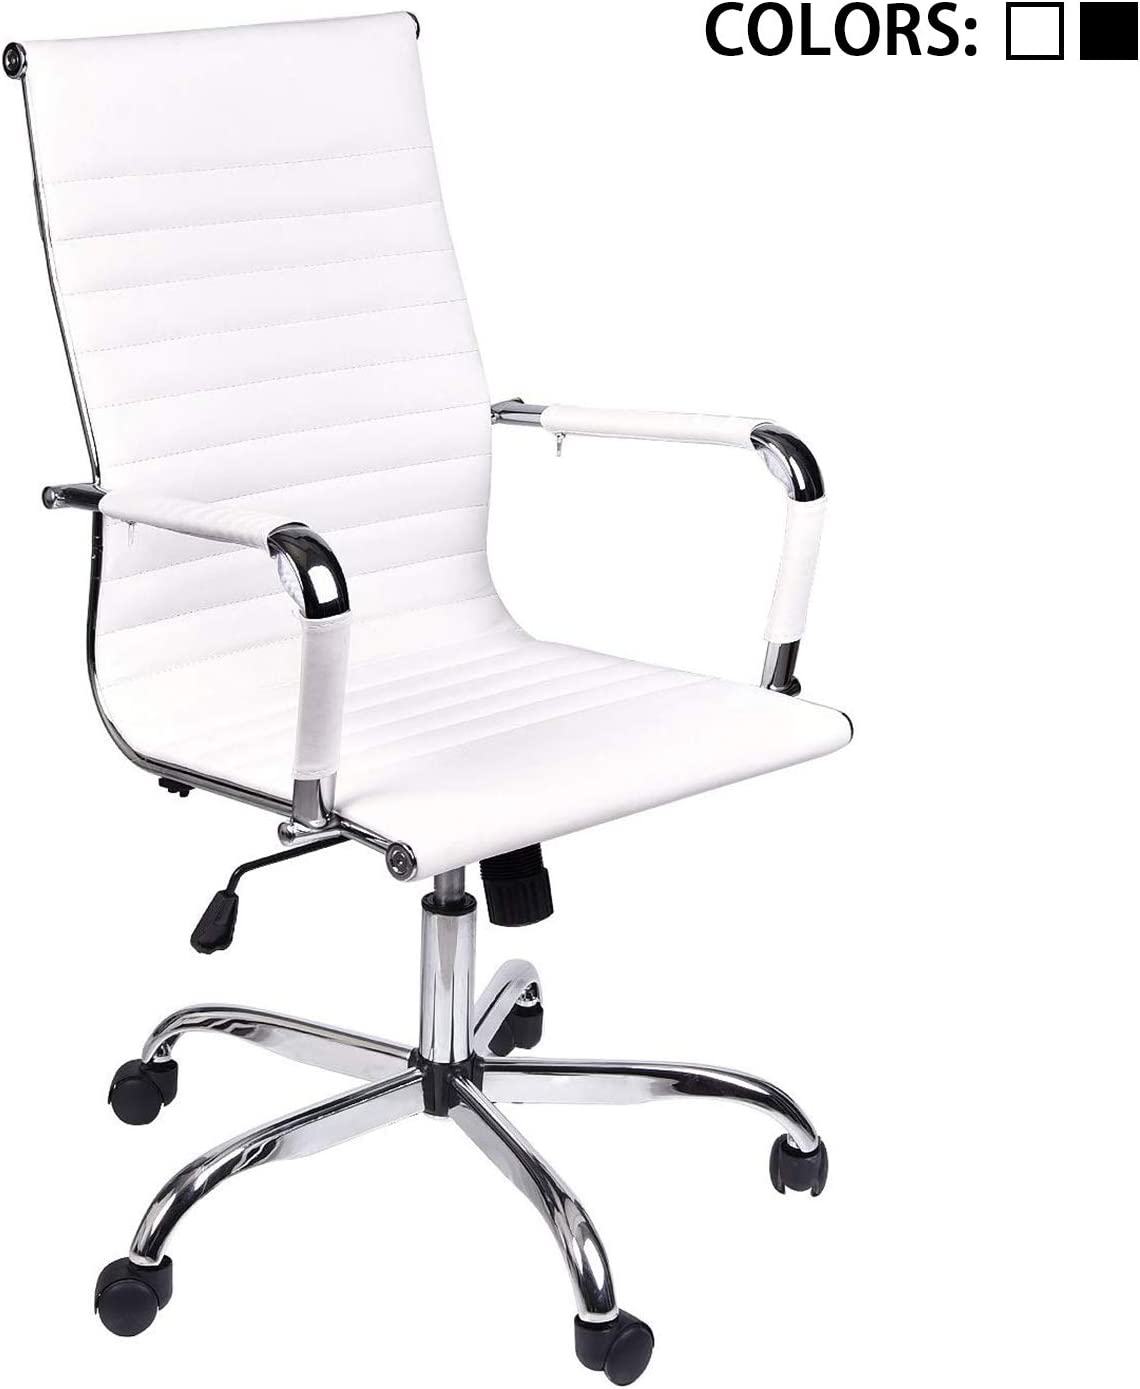 ELECWISH,Adjustable Office Executive Swivel Chair, High Back Padded Tall Ribbed, Pu Leather, Wheels Arm Rest Computer Chair, Chrome Base, Home Furniture, Conference Room Reception (White)